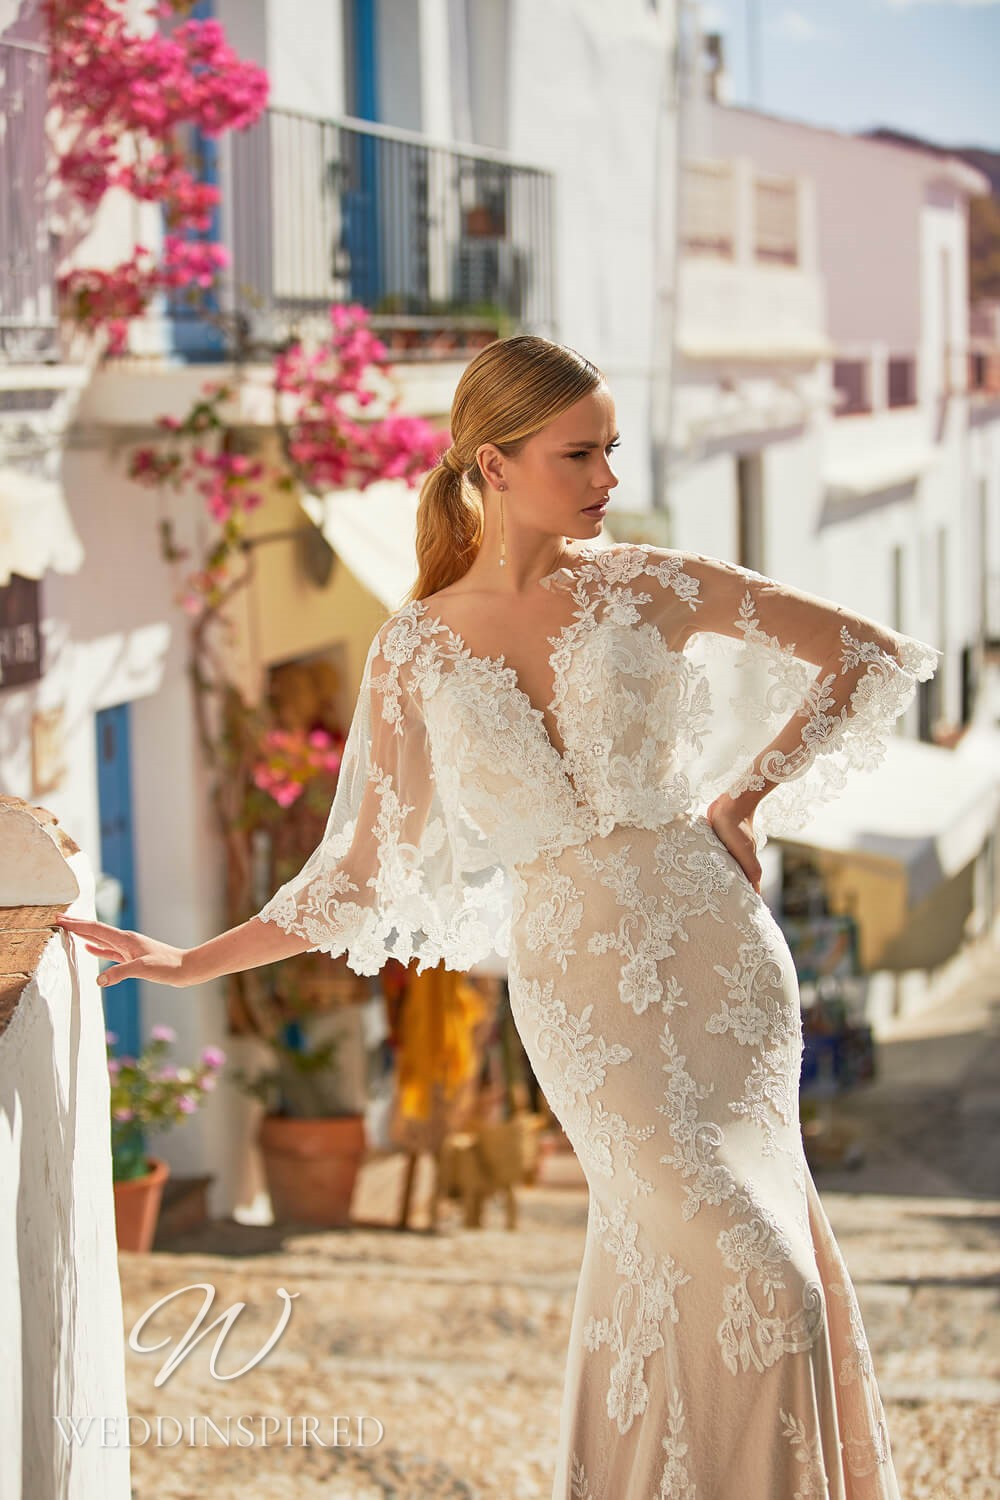 An Essential by Lussano 2021 lace mermaid wedding dress